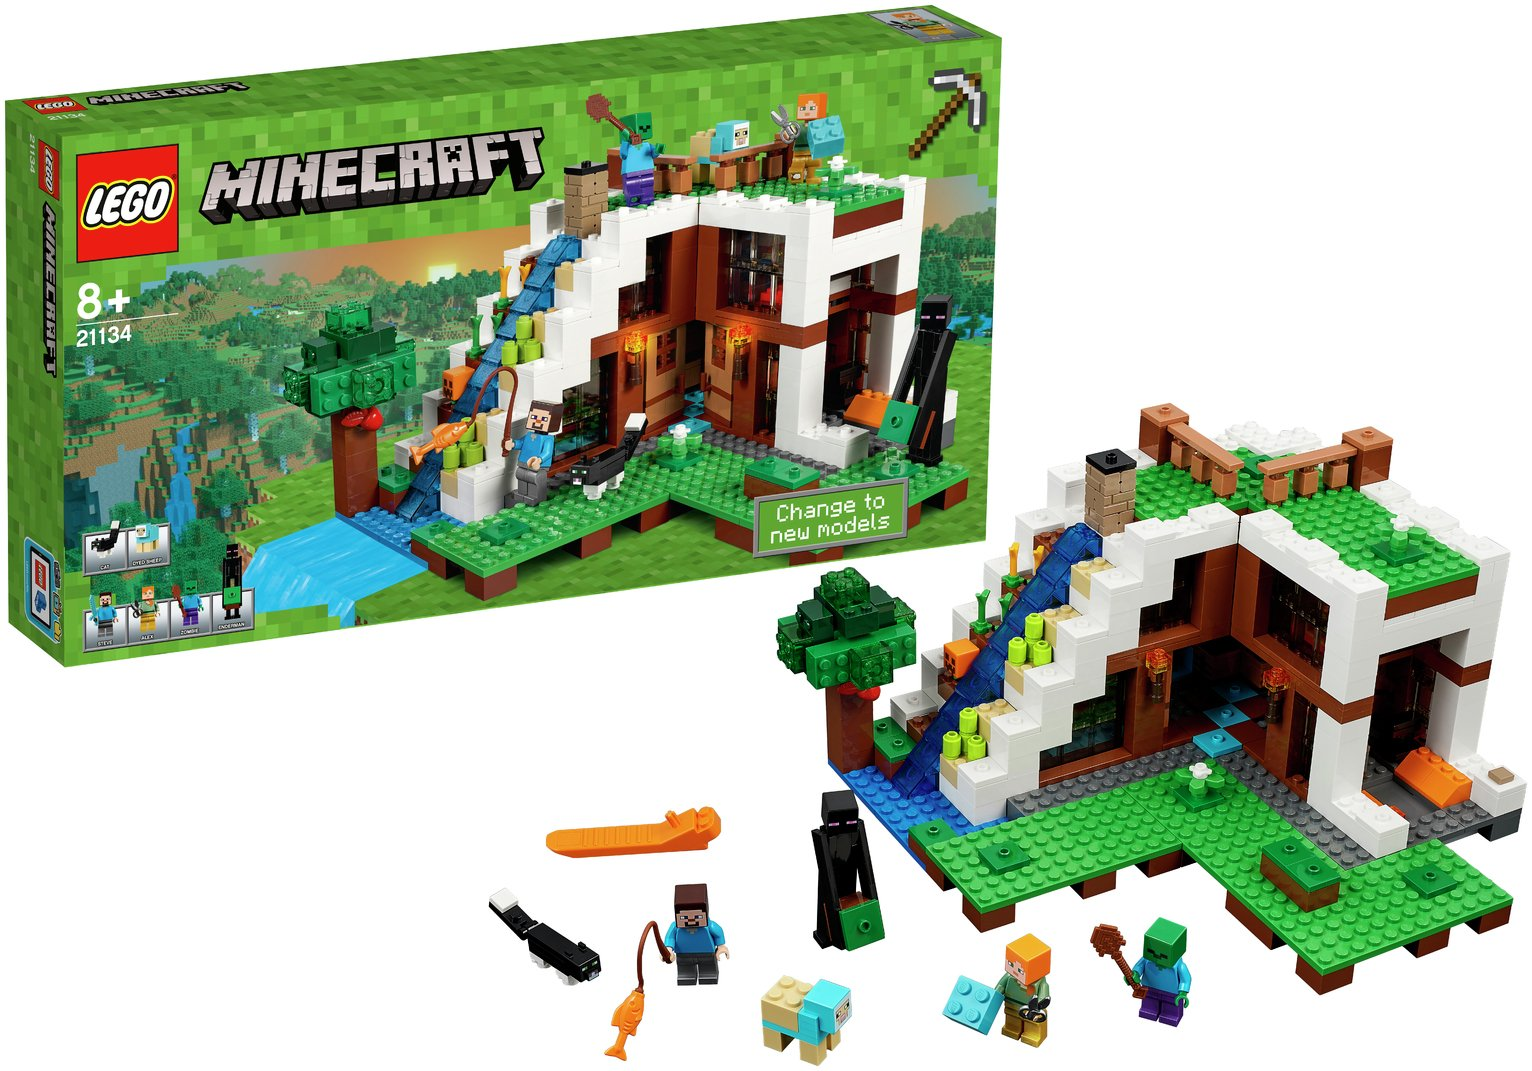 LEGO Minecraft The Waterfall Base - 21134.